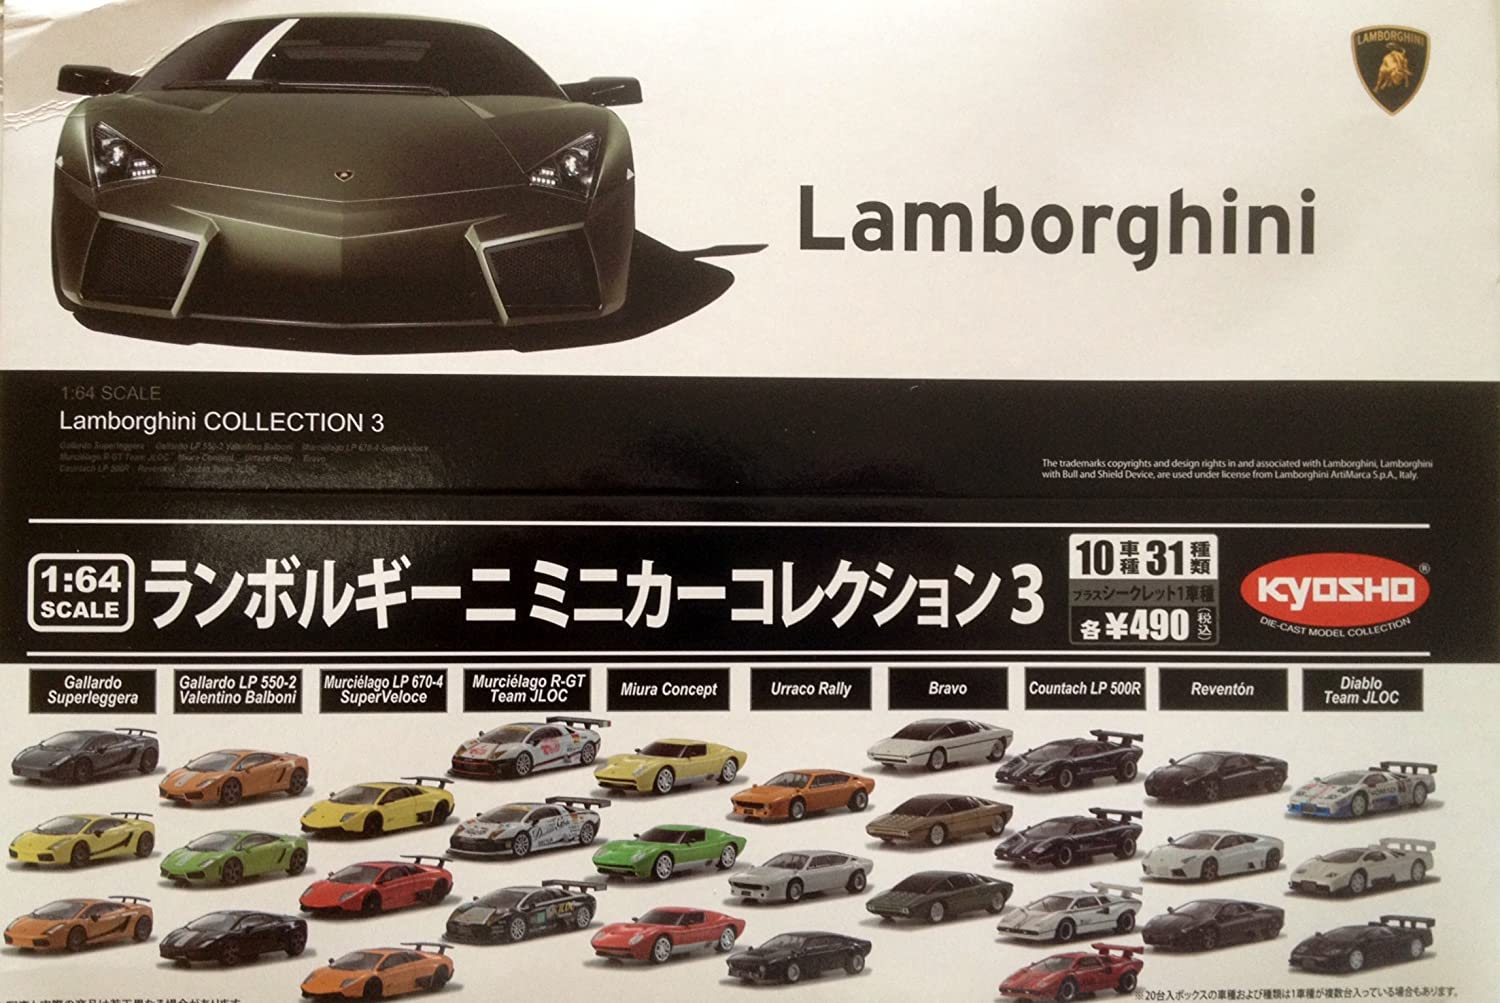 1 64 Kyosho Italy Lamborghini Minicar Collection 3 Die Cast Figure Blind Box Random Pick 1pc Toys Games